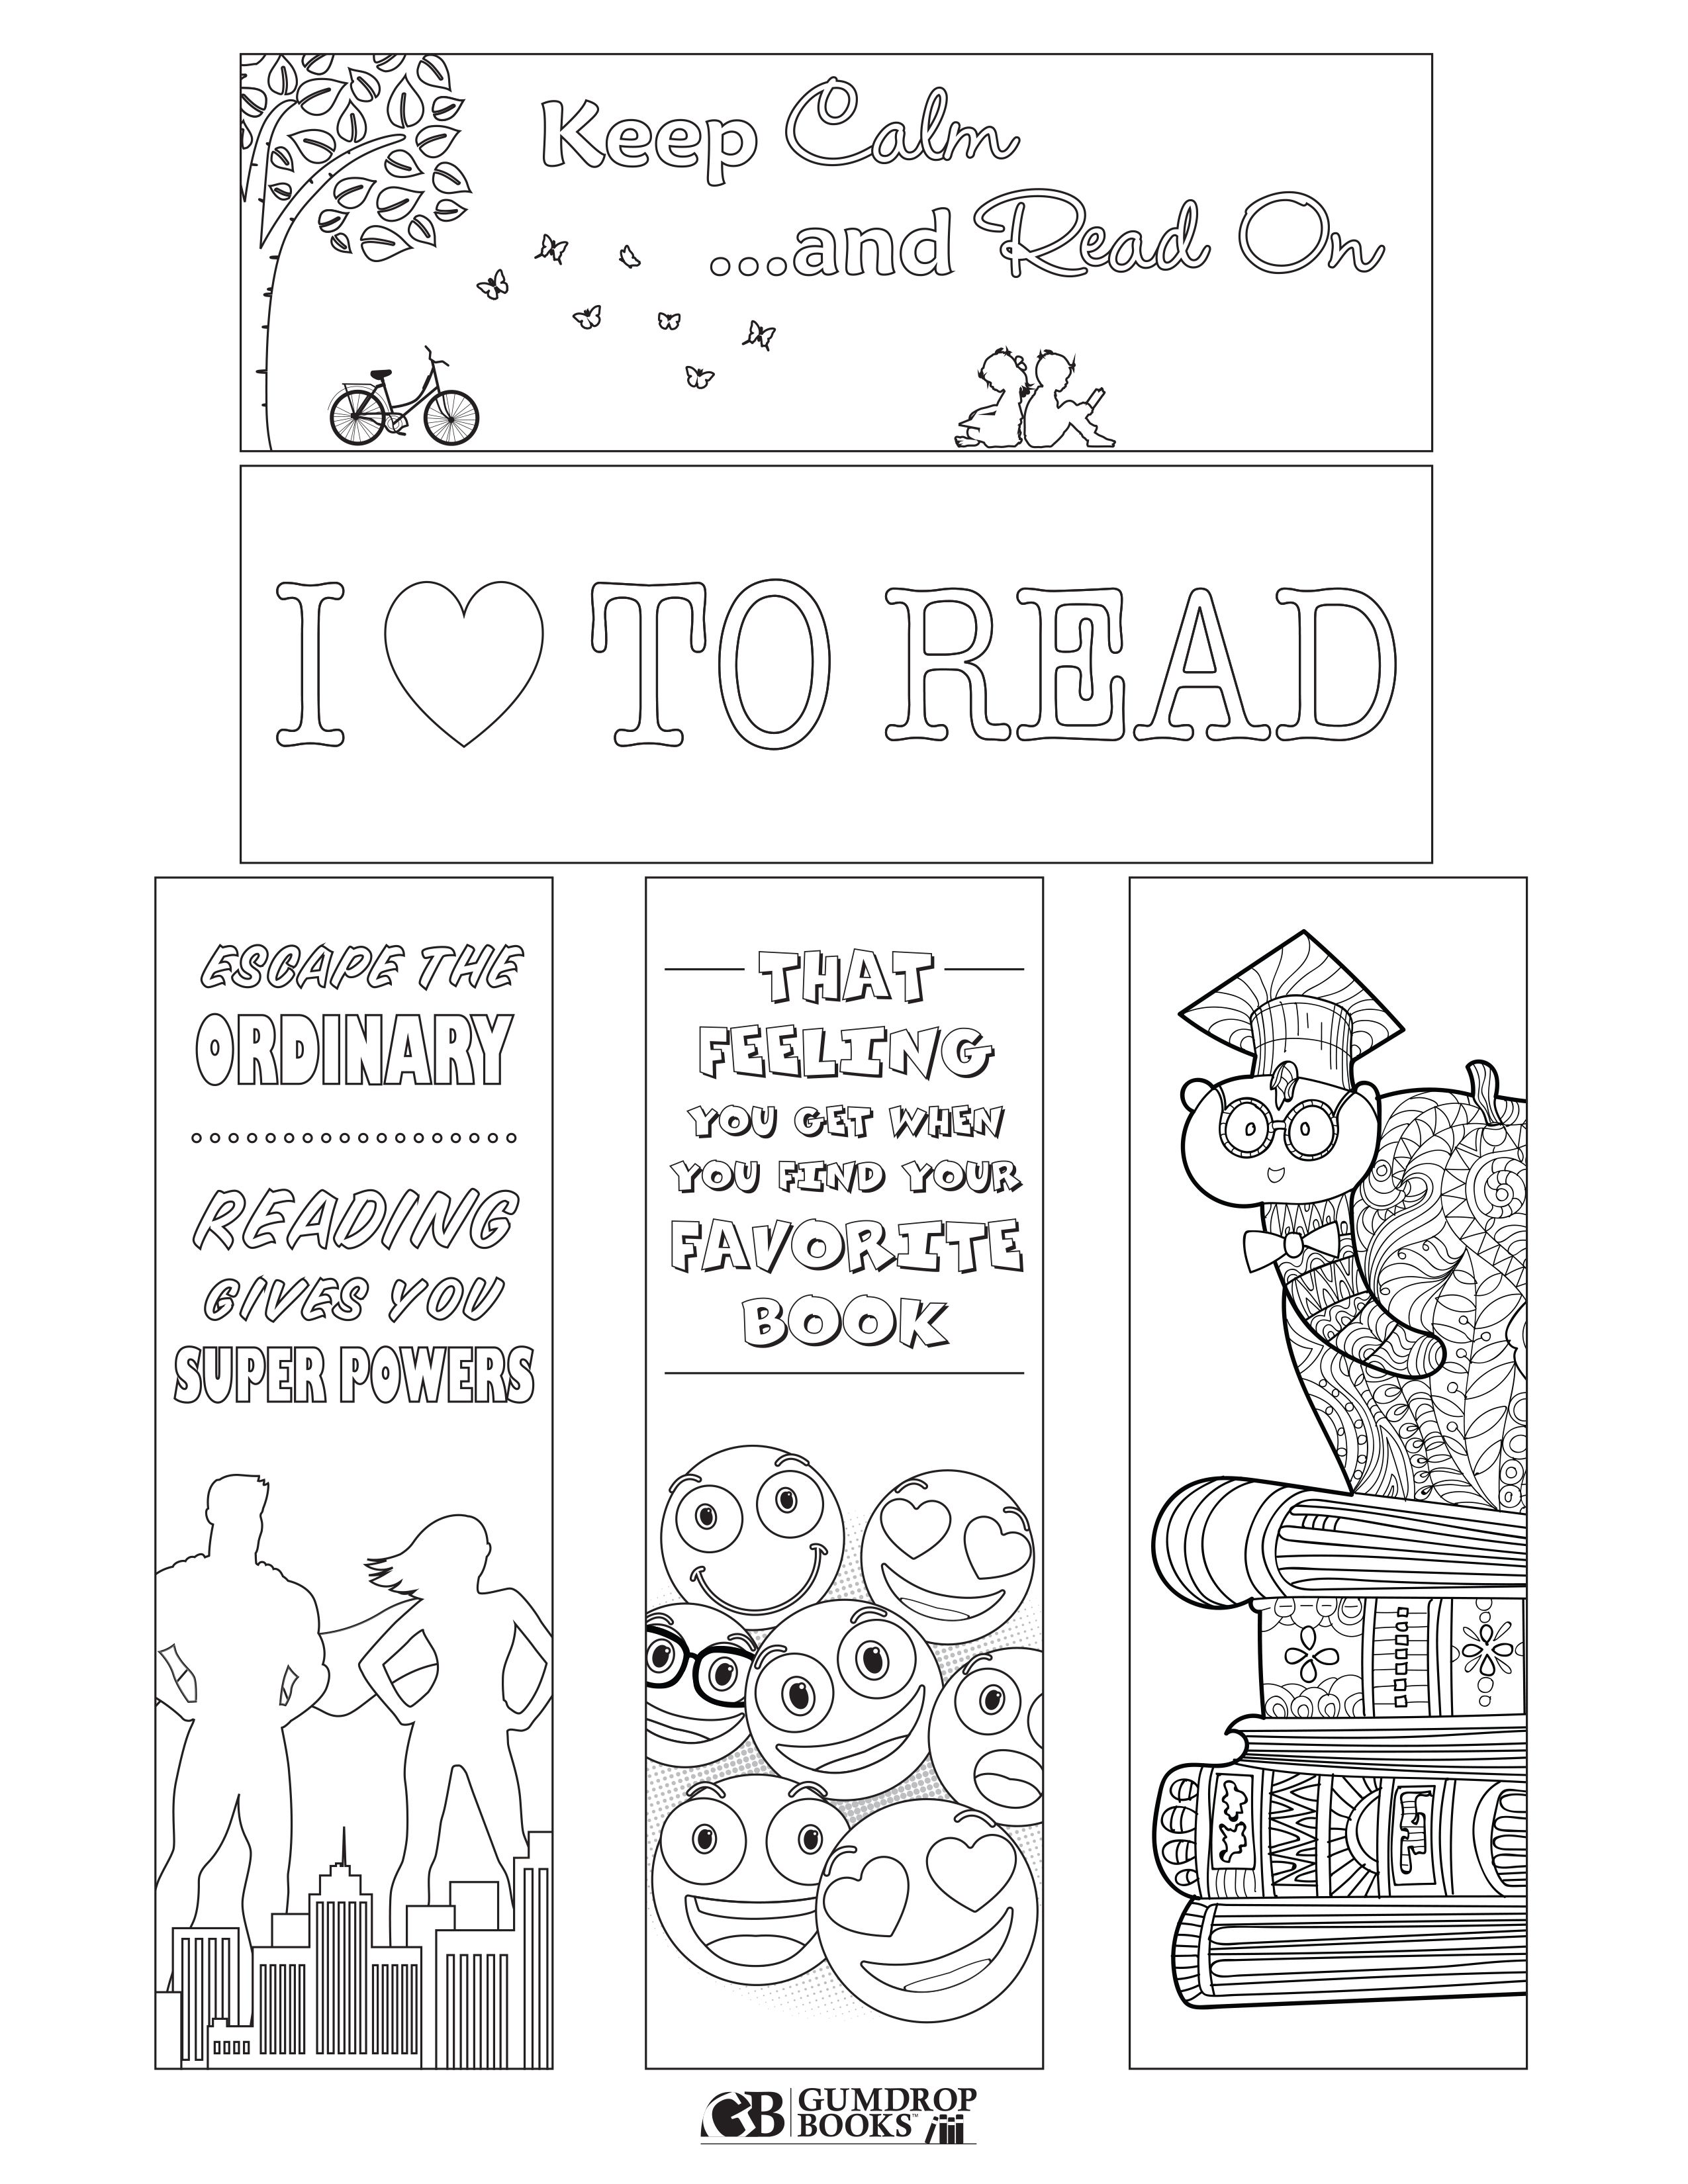 Free Printable Bookmarks From Gumdrop Books To Print Click On The Image To Make It Larger Then Free Printable Bookmarks Coloring Bookmarks Library Bookmarks [ 3300 x 2550 Pixel ]